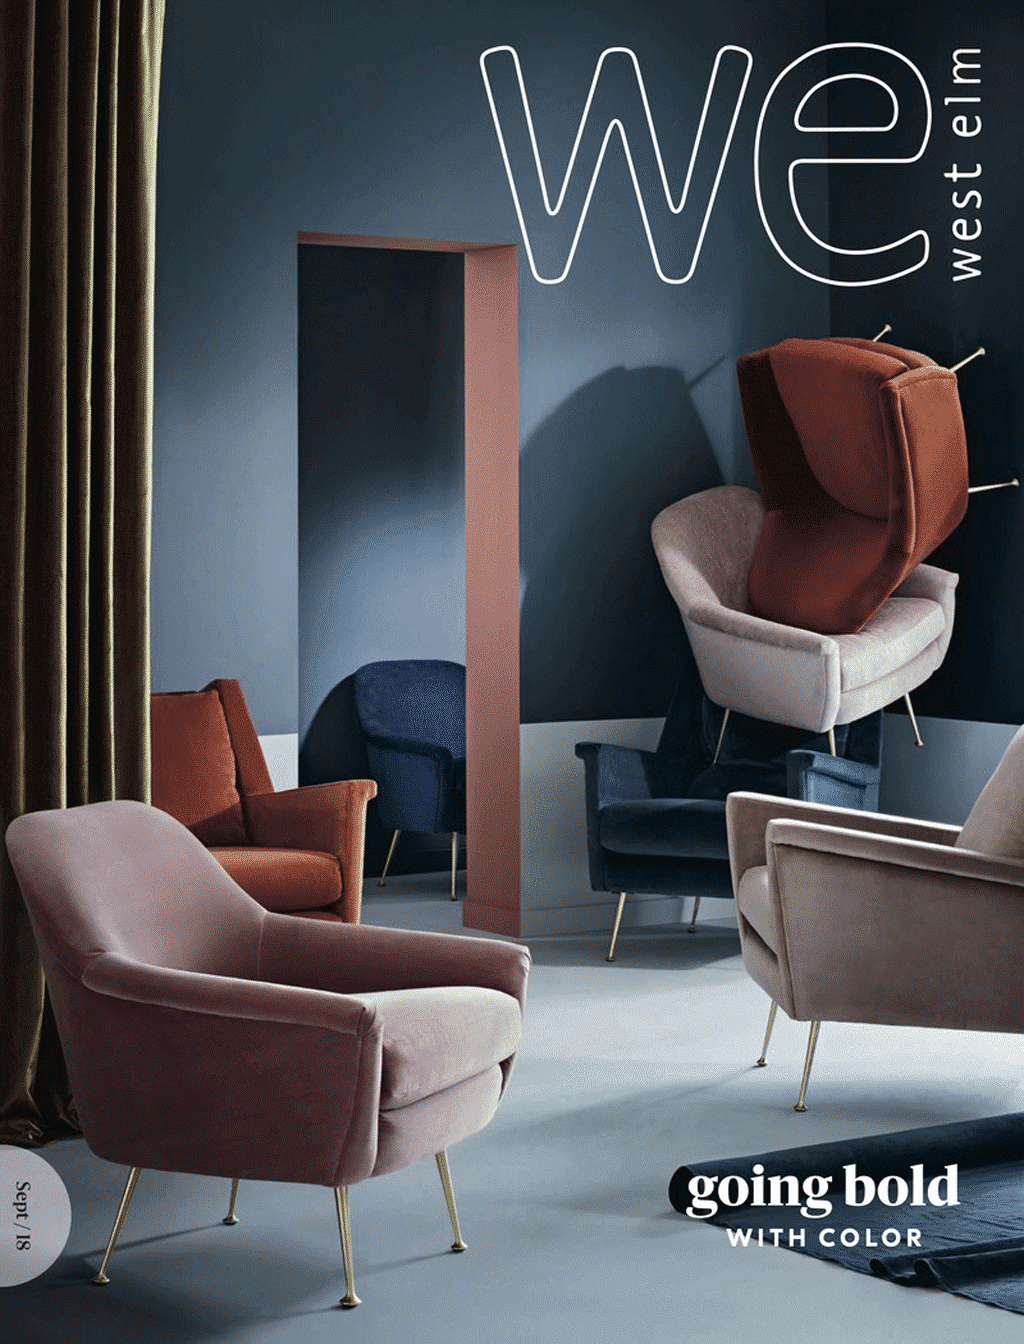 West Elm September 2018 catalog featuring copper/clay, teal and dusty rose colors for furniture and decor